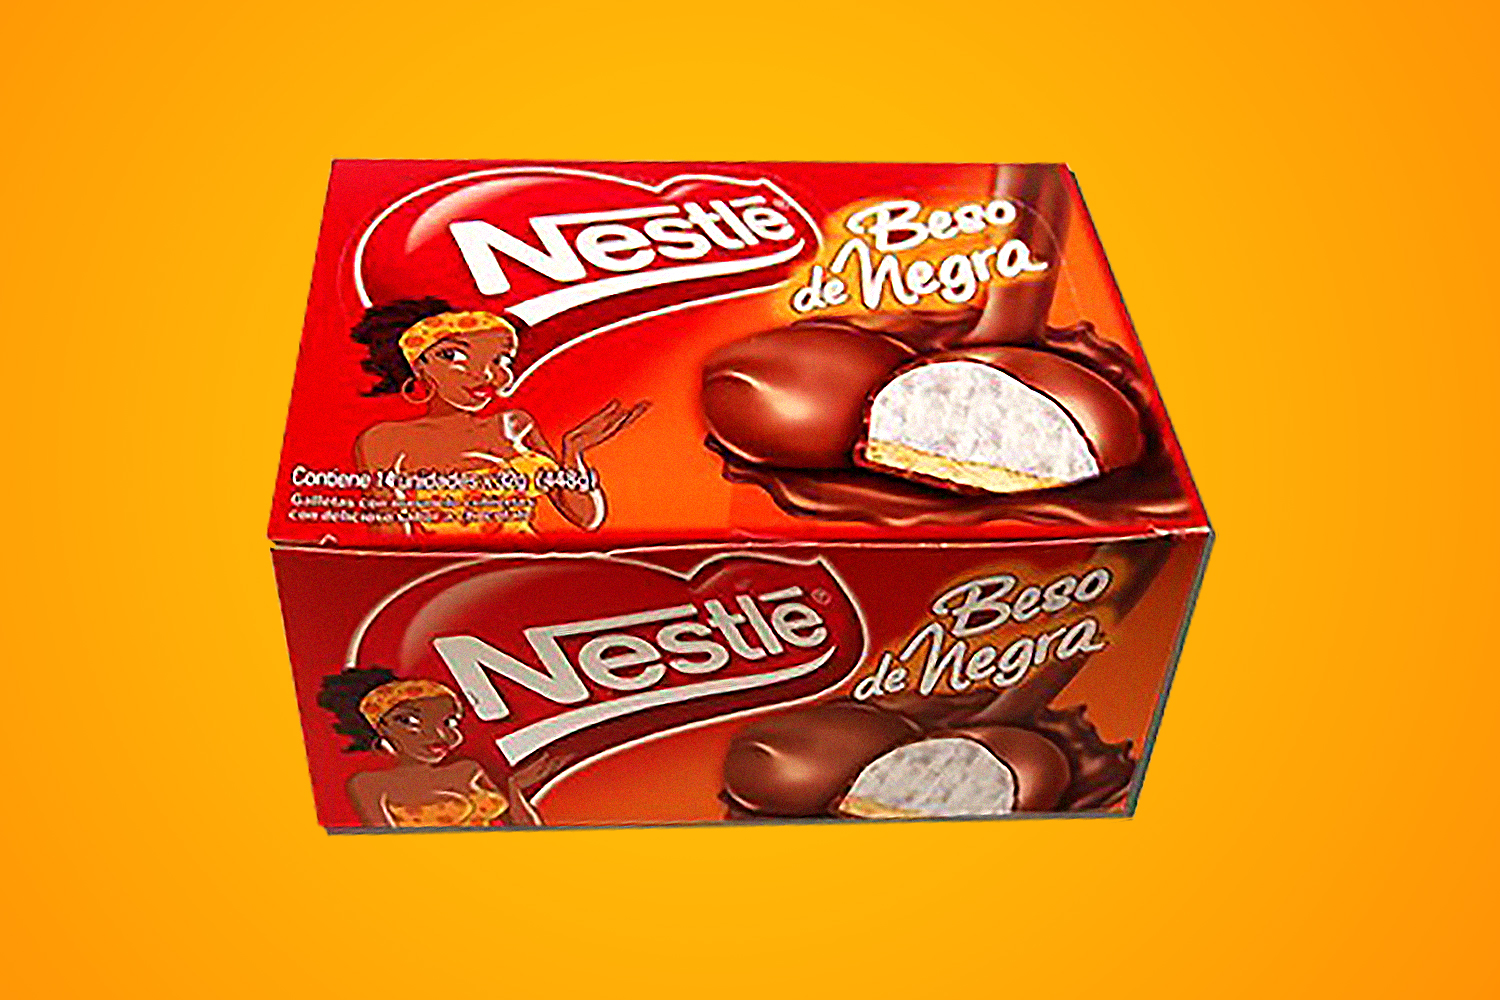 Nestlé pulls Beso de Negra candy as it reviews portfolio for racism